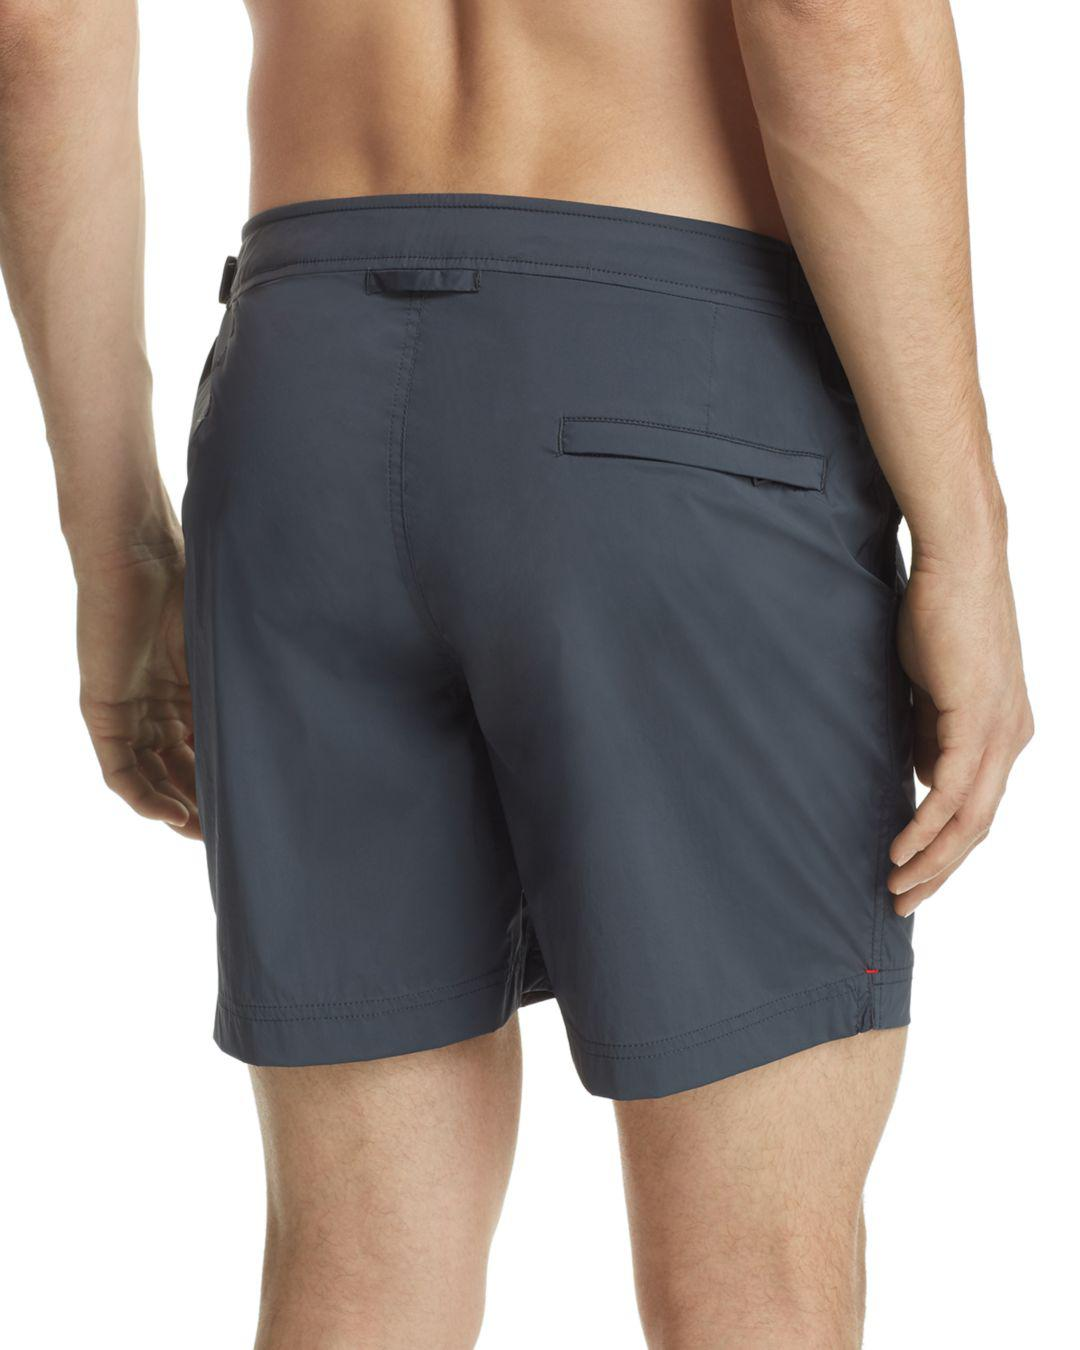 8c41a0e4c1 Orlebar Brown Jack Board Shorts in Blue for Men - Lyst